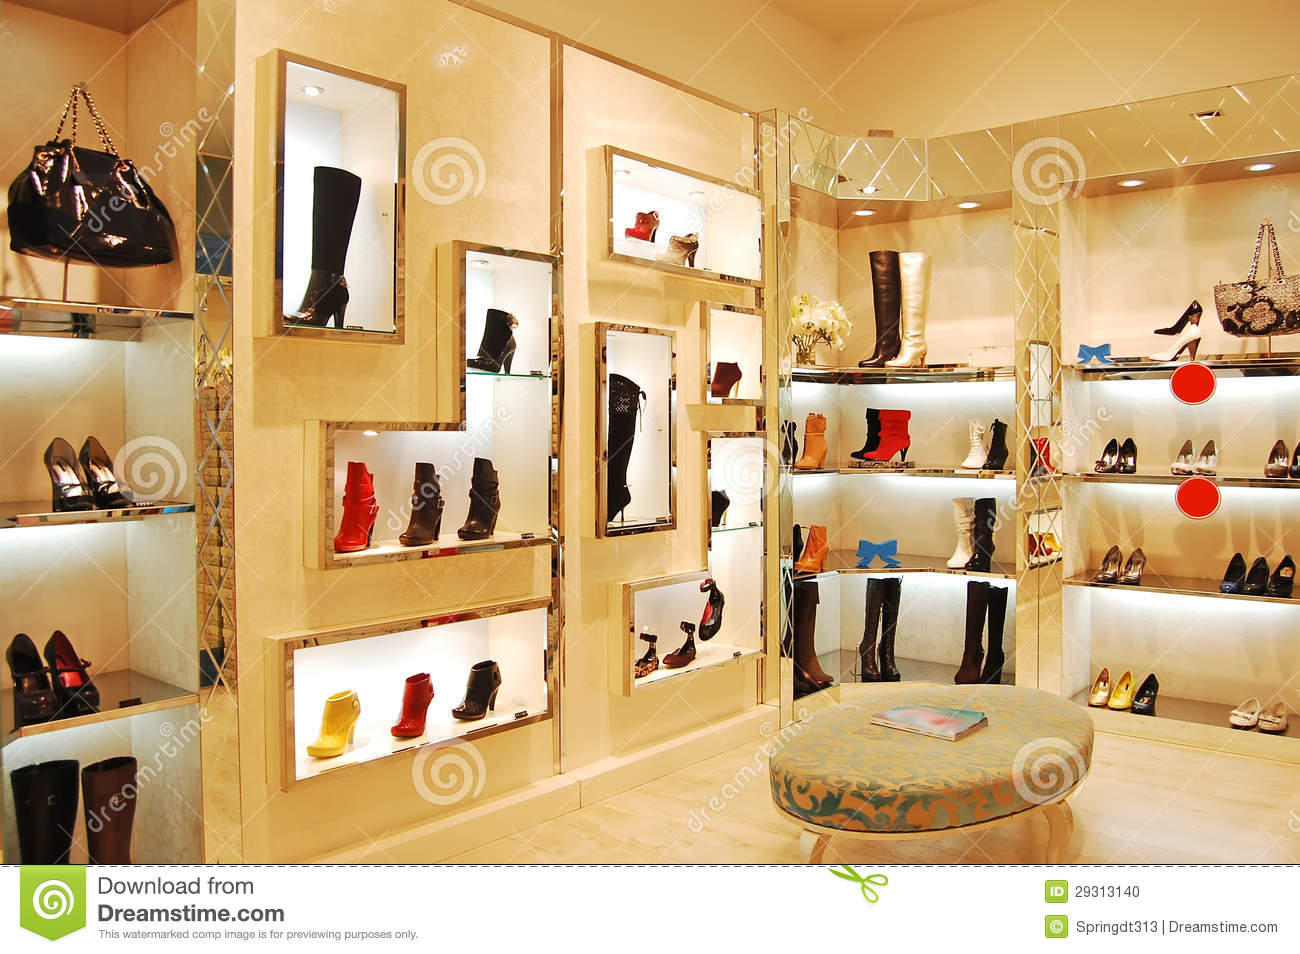 Store En Stock Shoes And Bags In Store Stock Photo Image Of Colorful 29313140